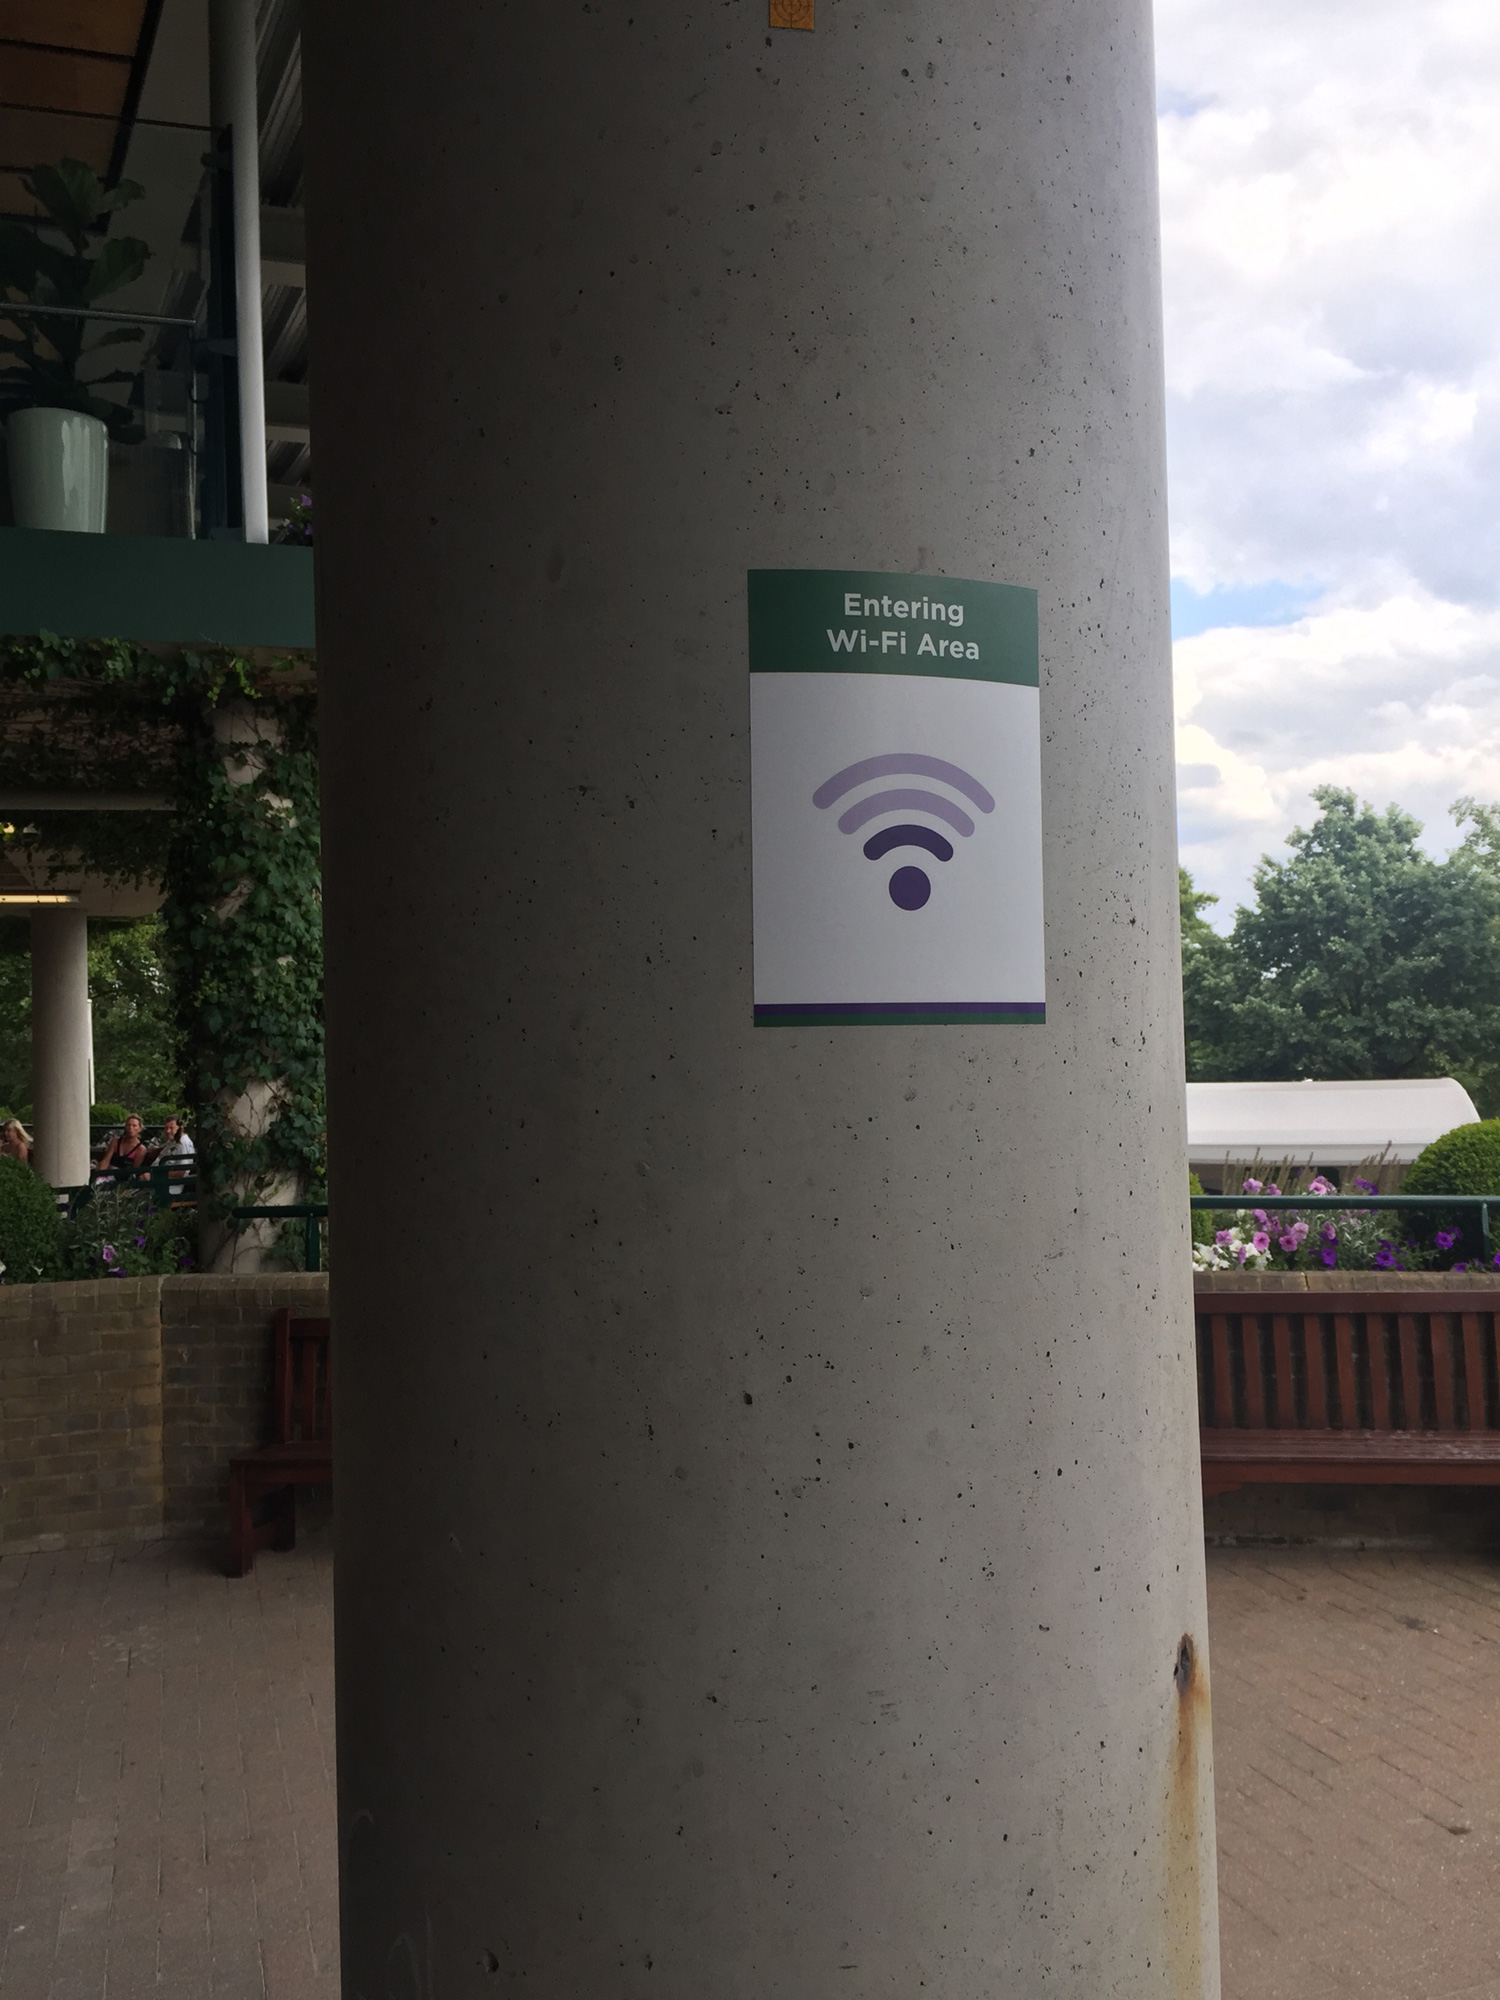 Wimbledon cutely used a variety of Wi-Fi signs to indicate how strong the signal should be in a given area.